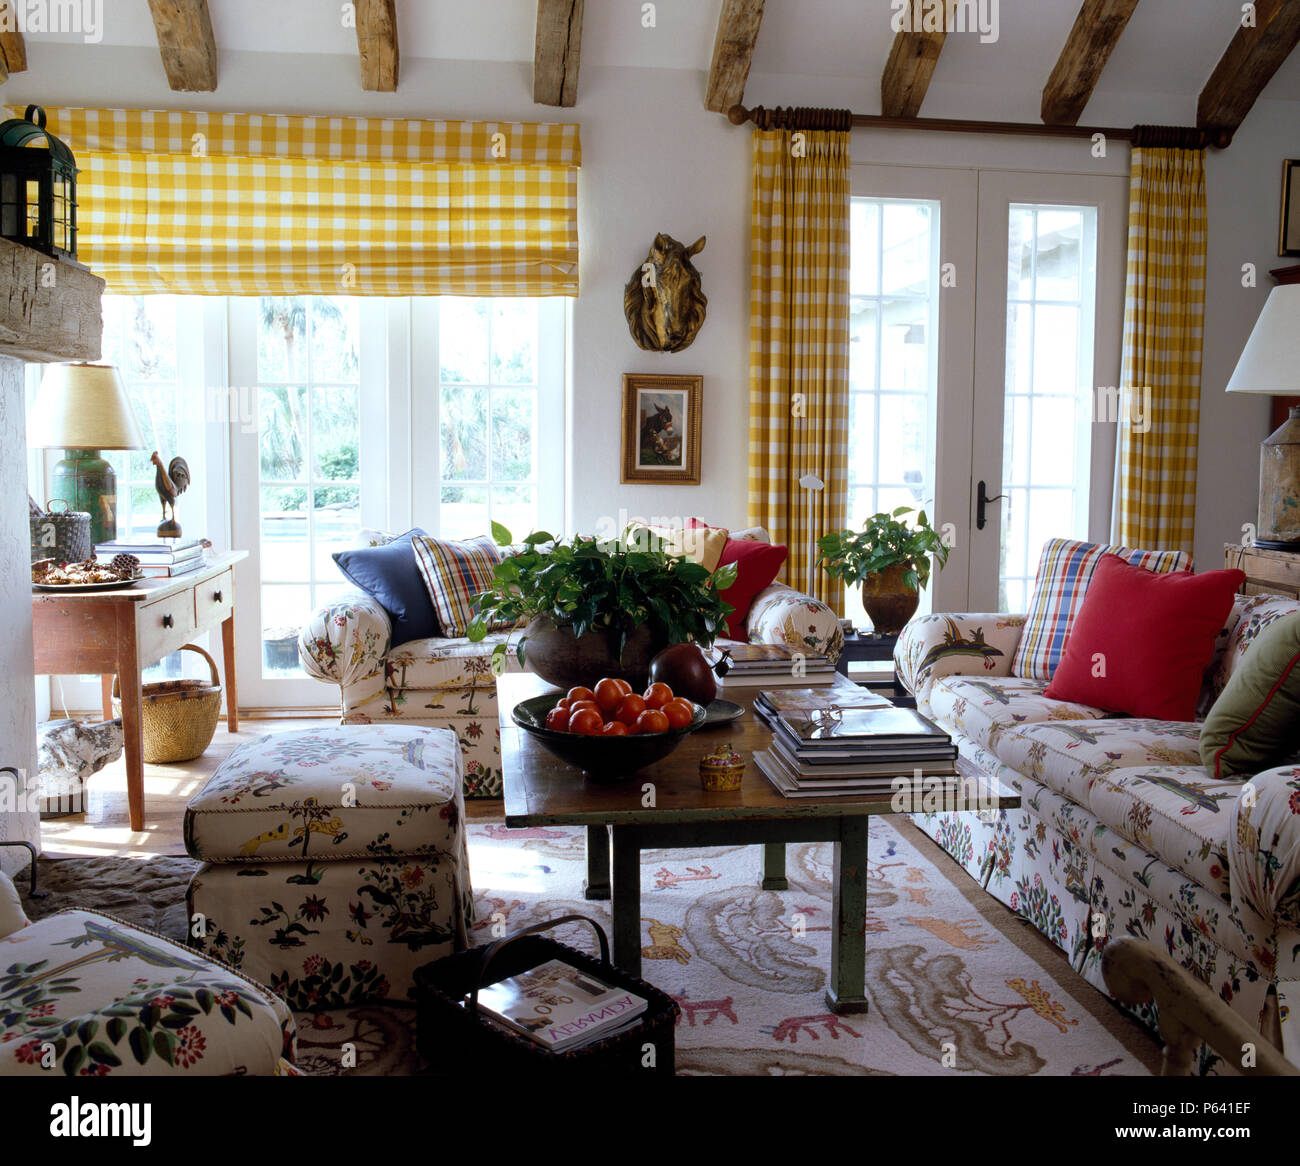 Yellow checked blind and curtains on French windows in a ...